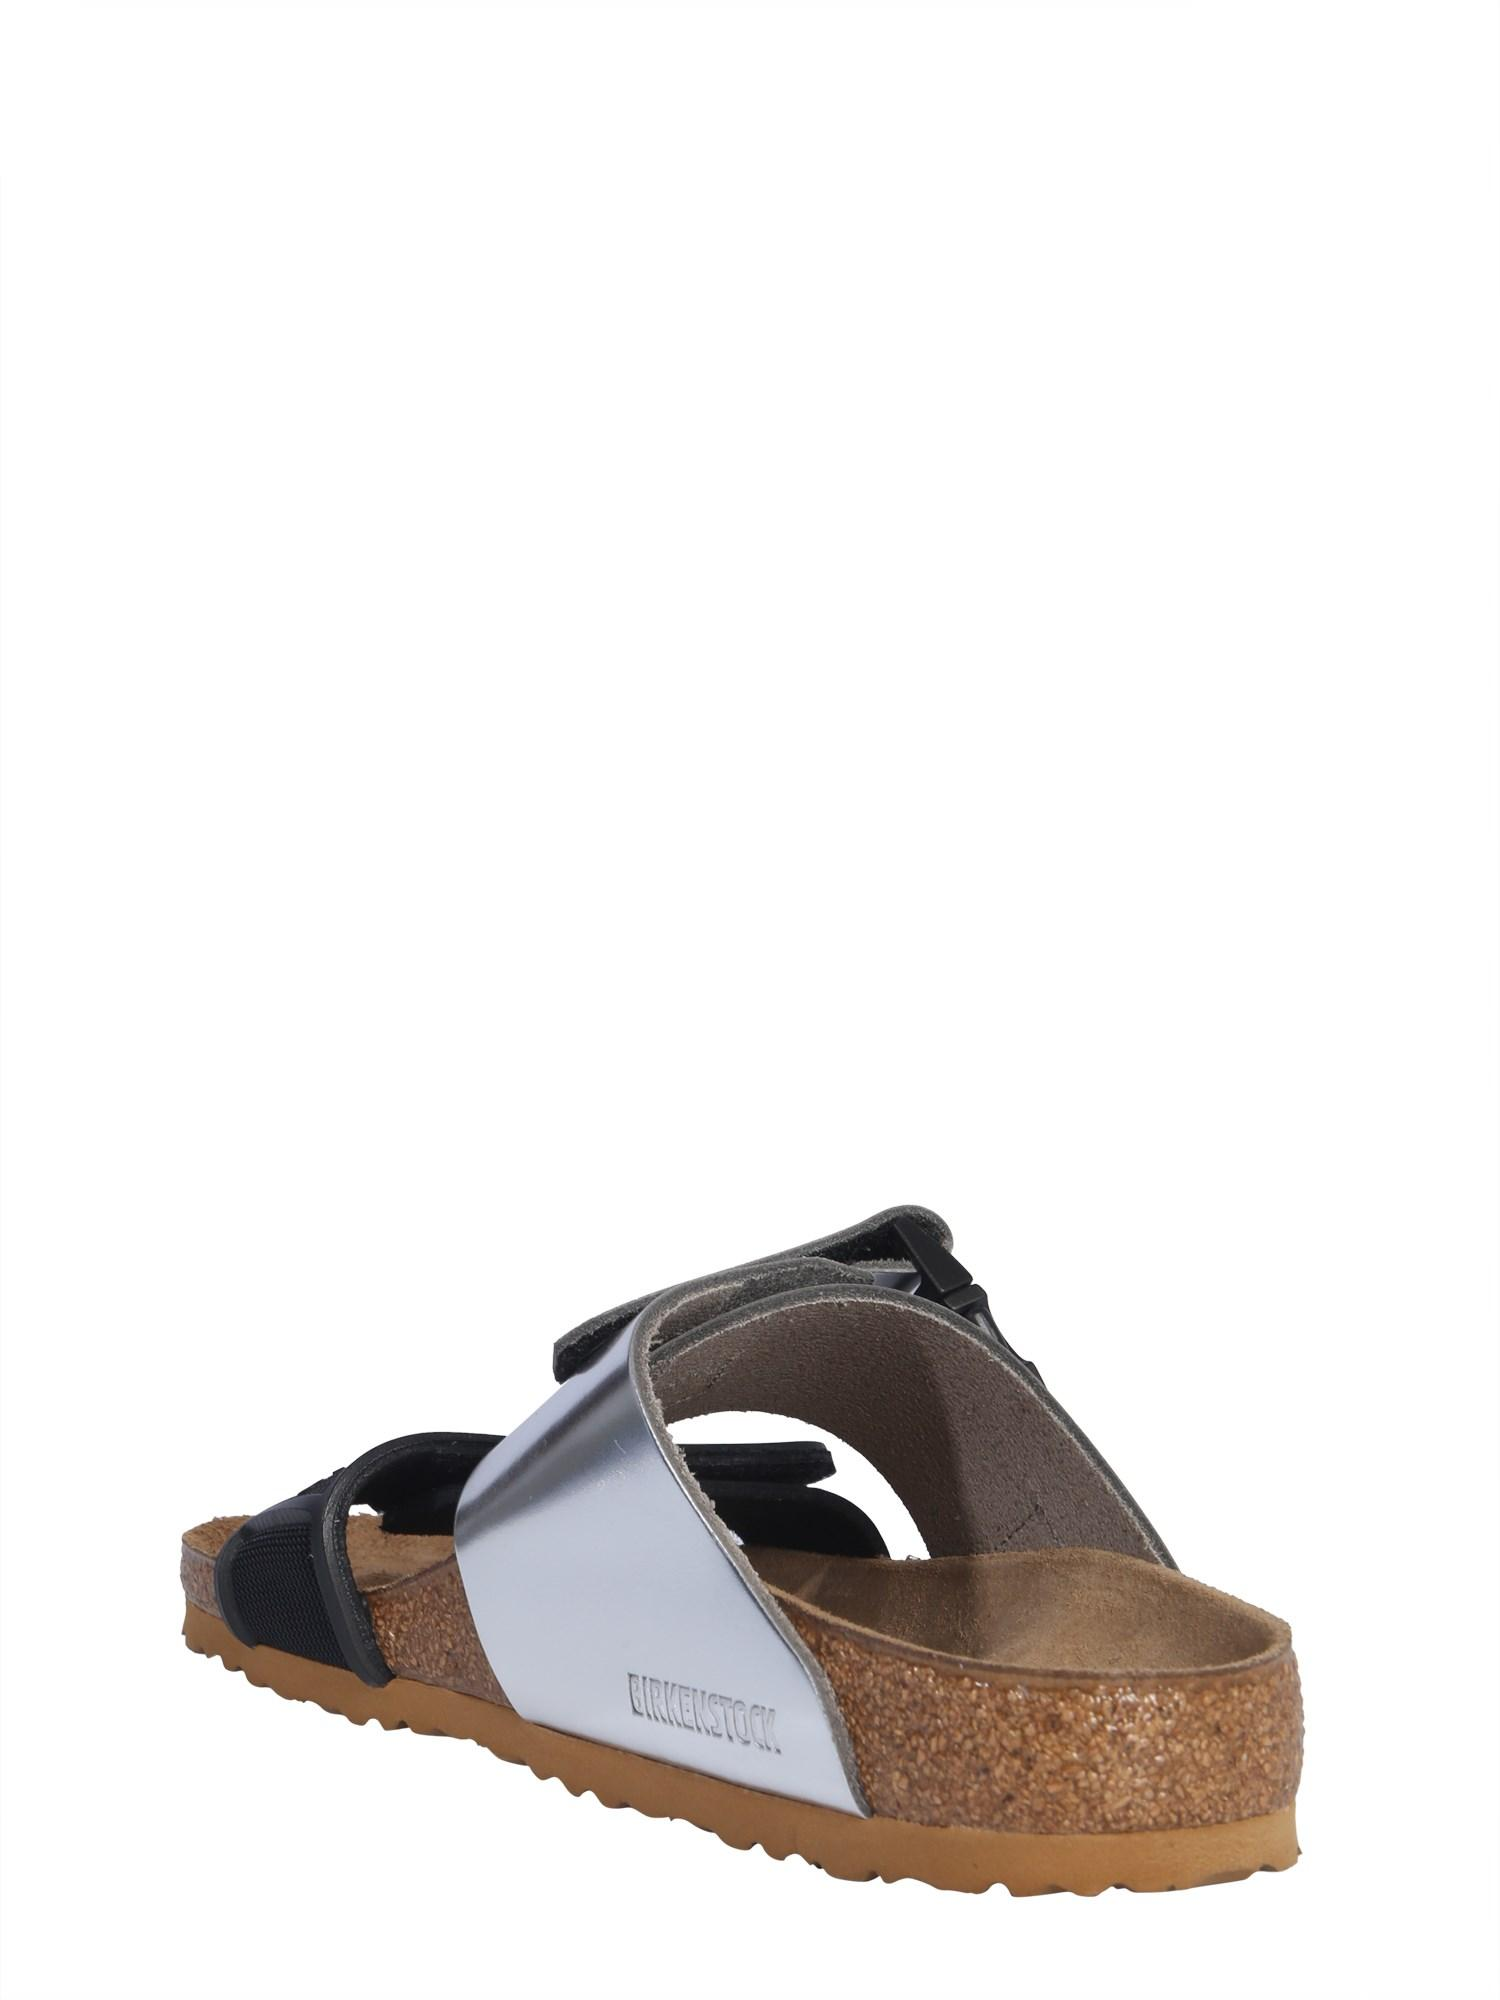 45ab44ce7823 Rick Owens Leather Rotterdam Sandals - Lyst